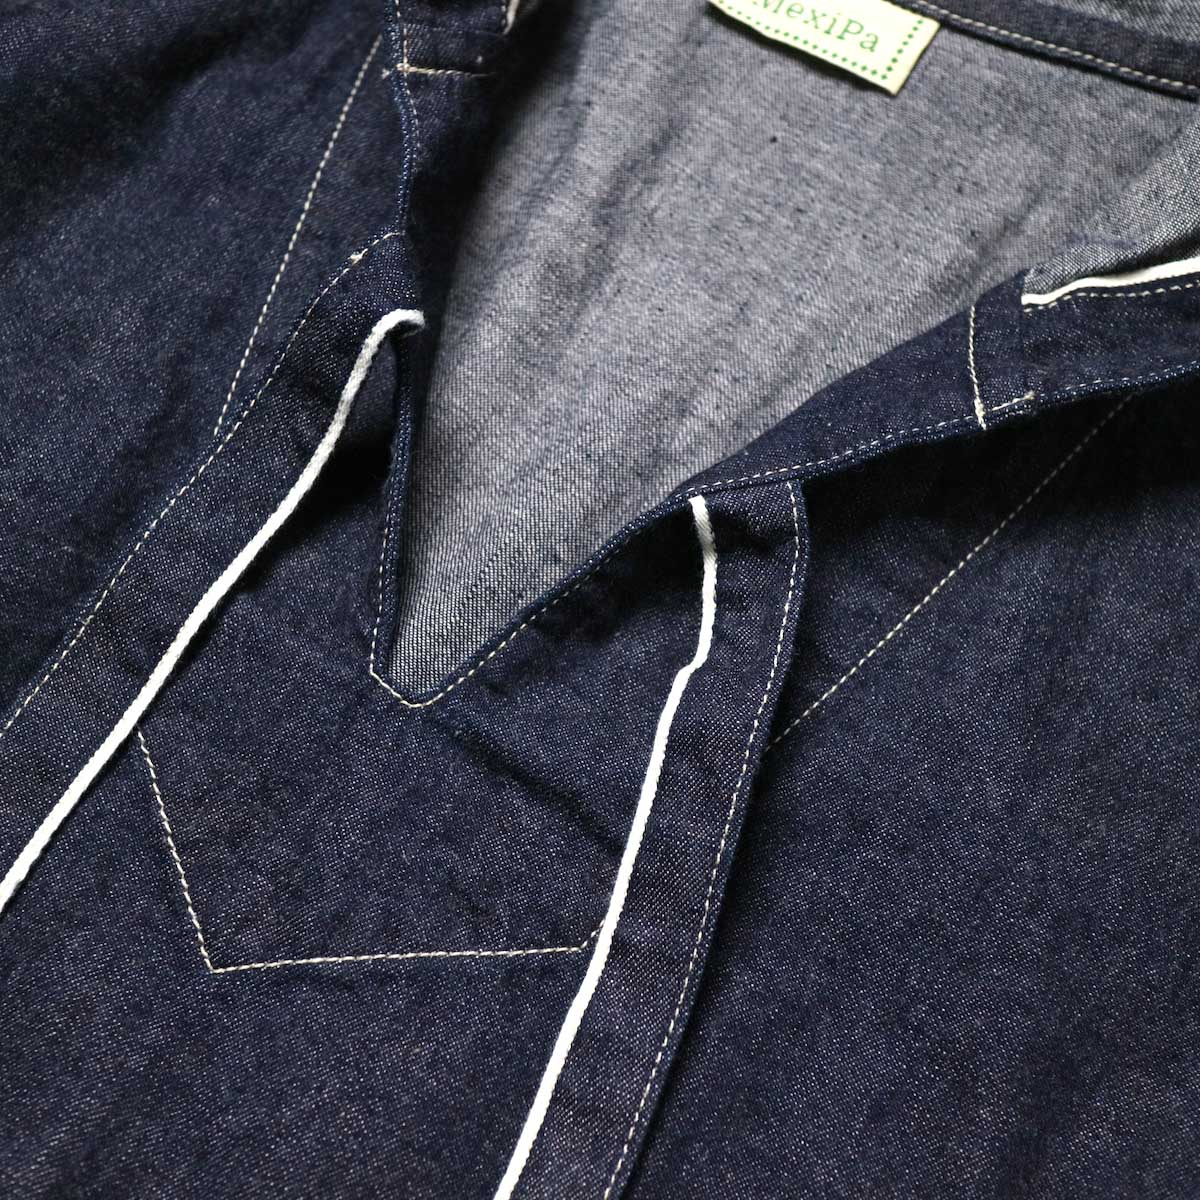 MexiPa / Selvage Denim Mexican Parker セルビッチ